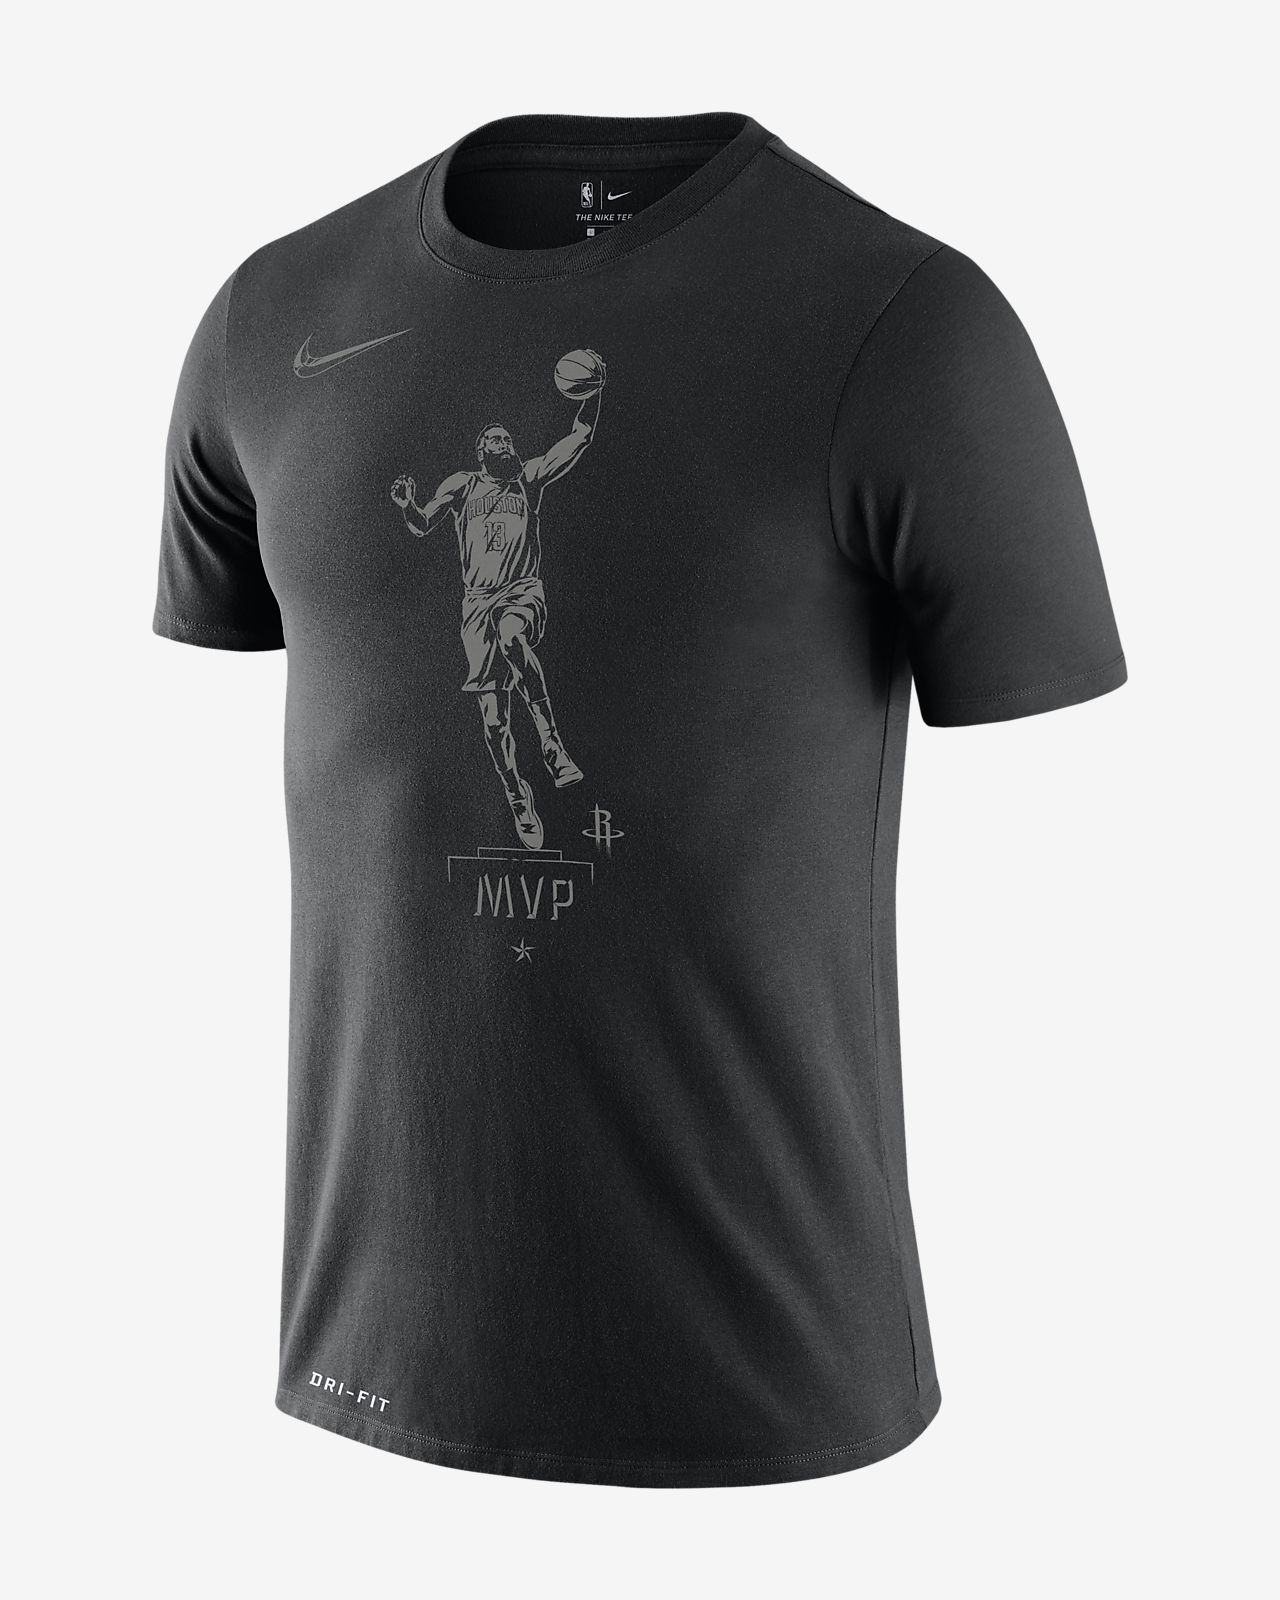 "Playera de la NBA para hombre James Harden Nike Dri-FIT ""MVP"""